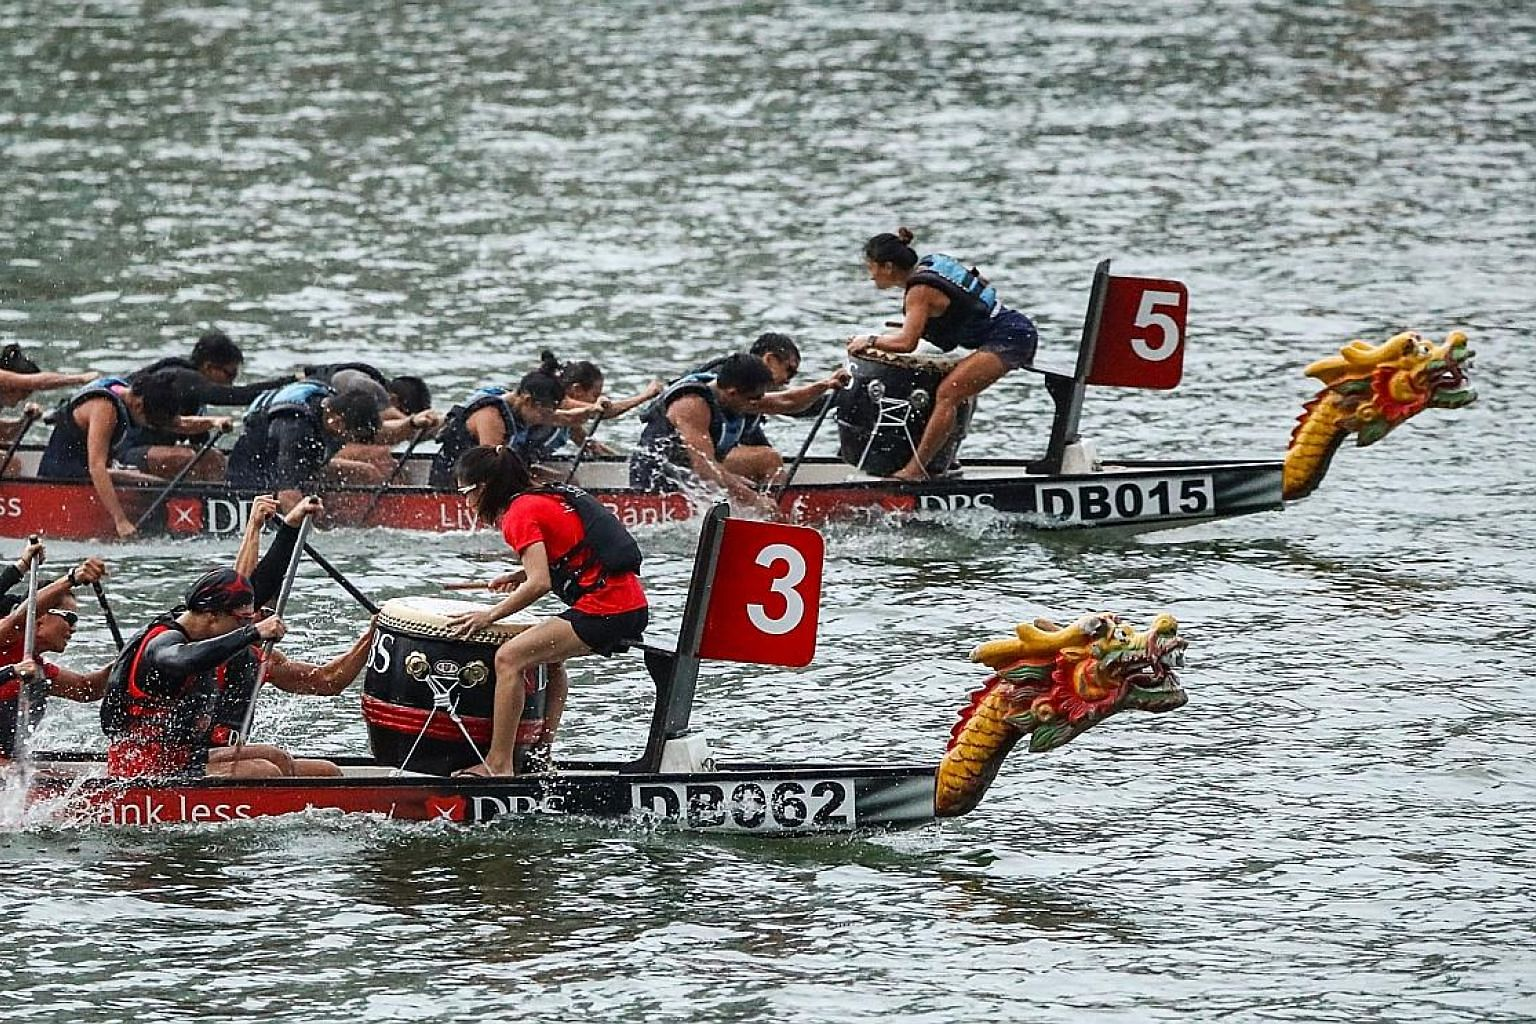 KPMG Dragonboat A (No. 5) pipped defending champions DBS Bank Ltd A (No. 3) to the 200m corporate mixed title at The Promontory @ Marina Bay yesterday.